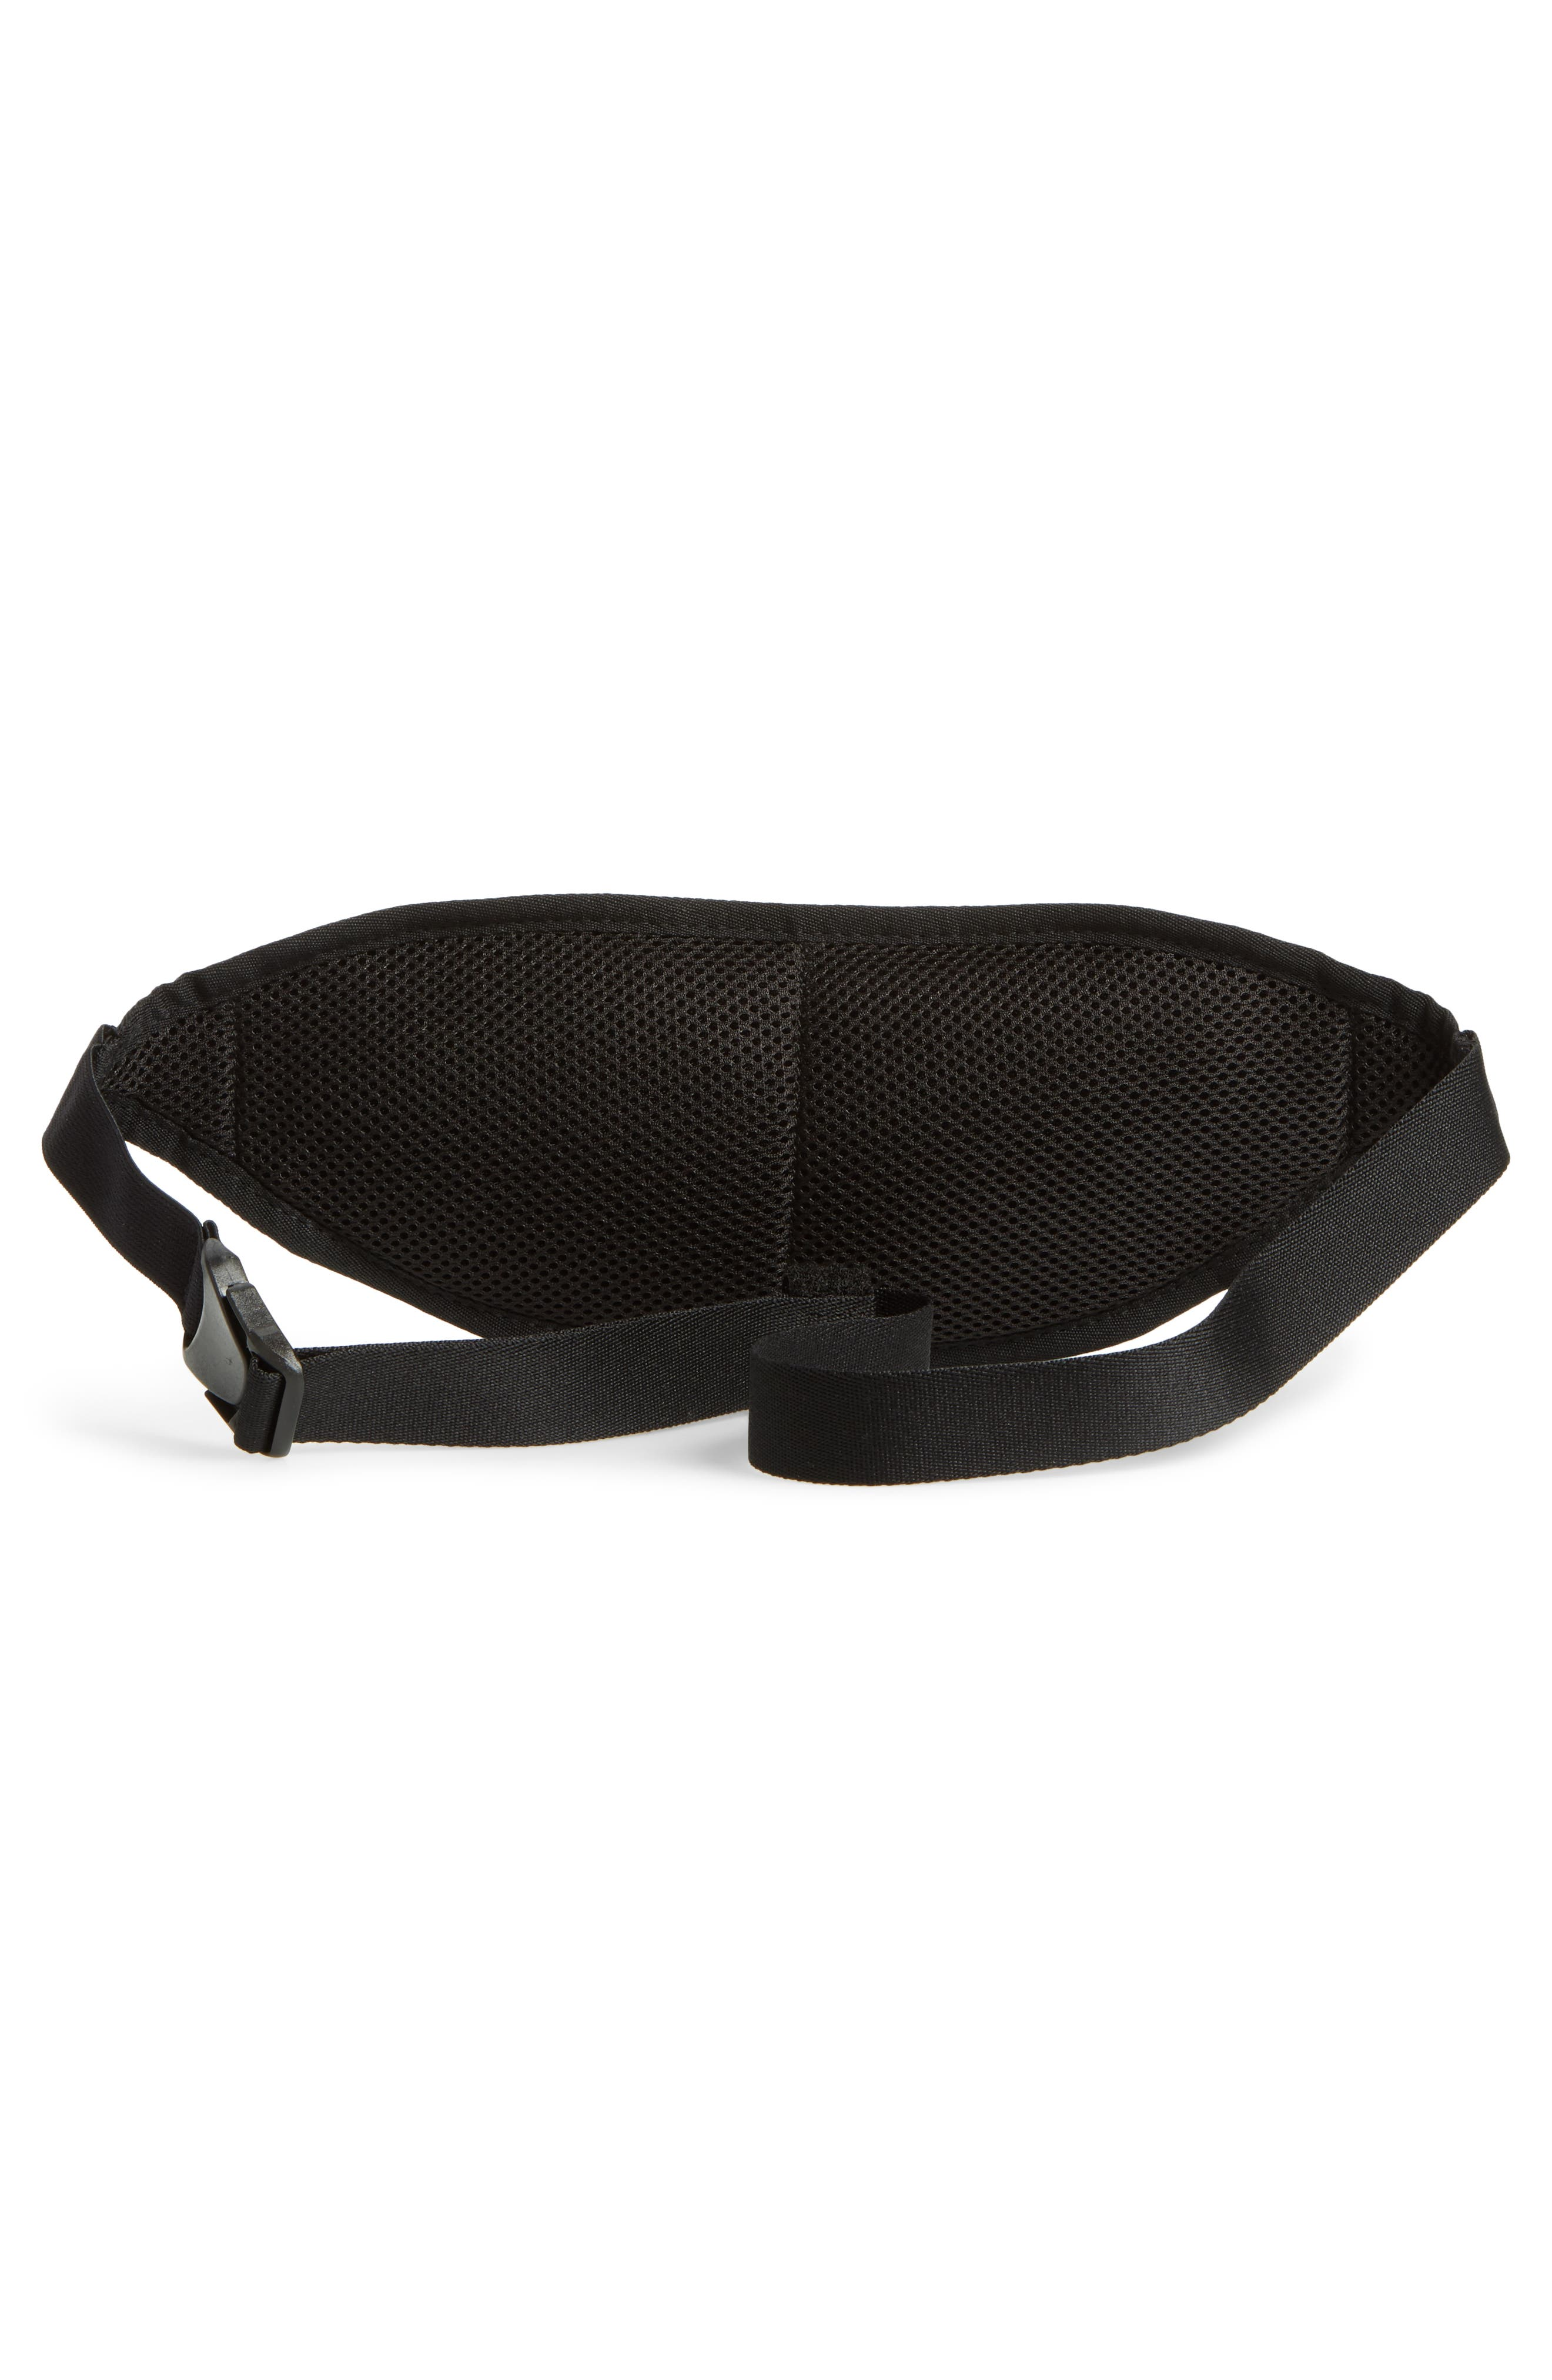 Large Capacity Hip Pack,                             Alternate thumbnail 3, color,                             019